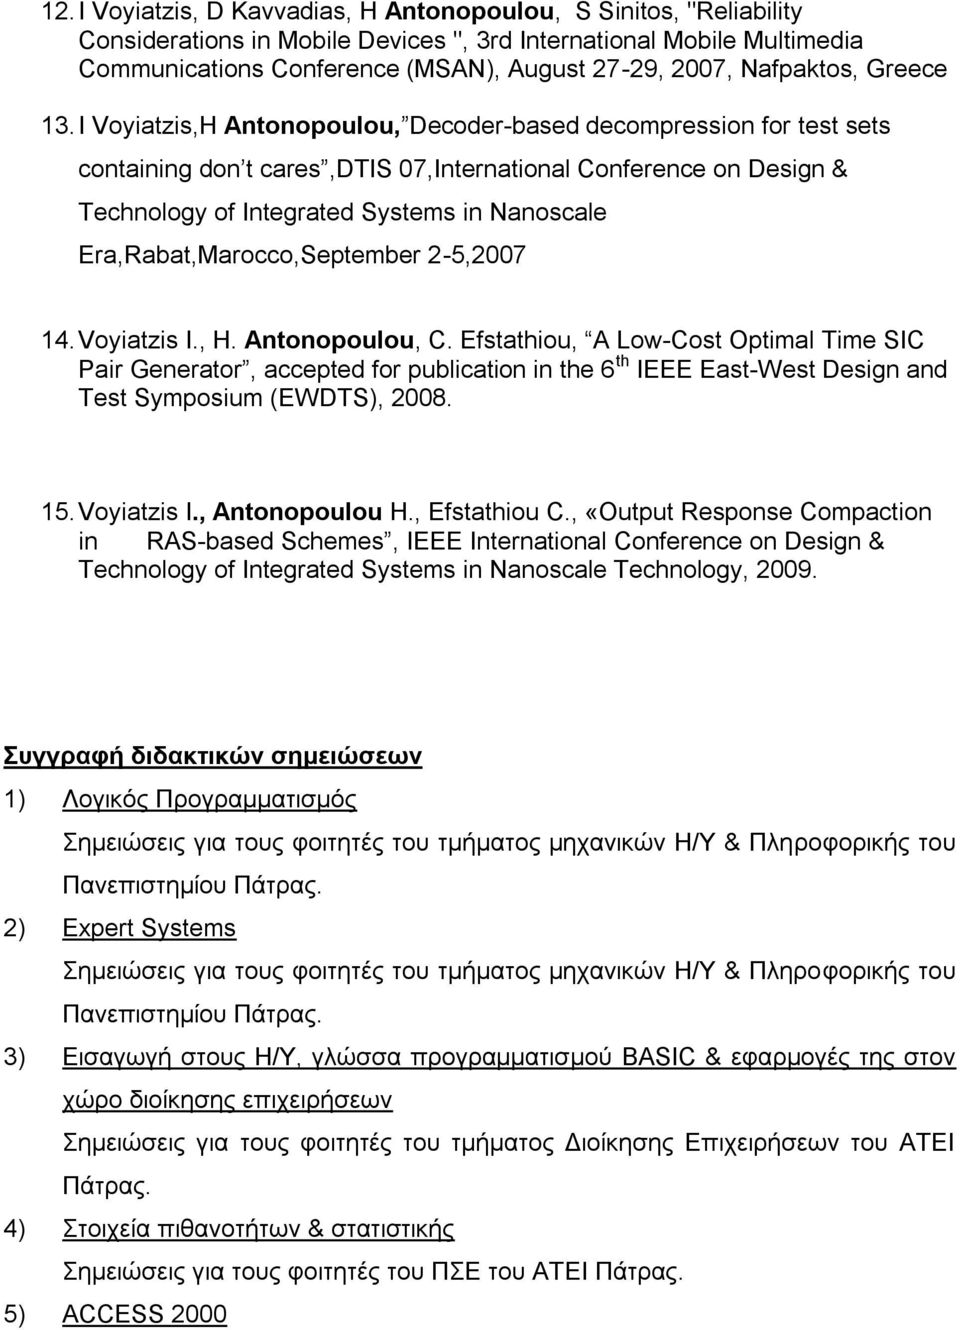 I Voyiatzis,H Antonopoulou, Decoder-based decompression for test sets containing don t cares,dtis 07,International Conference on Design & Technology of Integrated Systems in Nanoscale